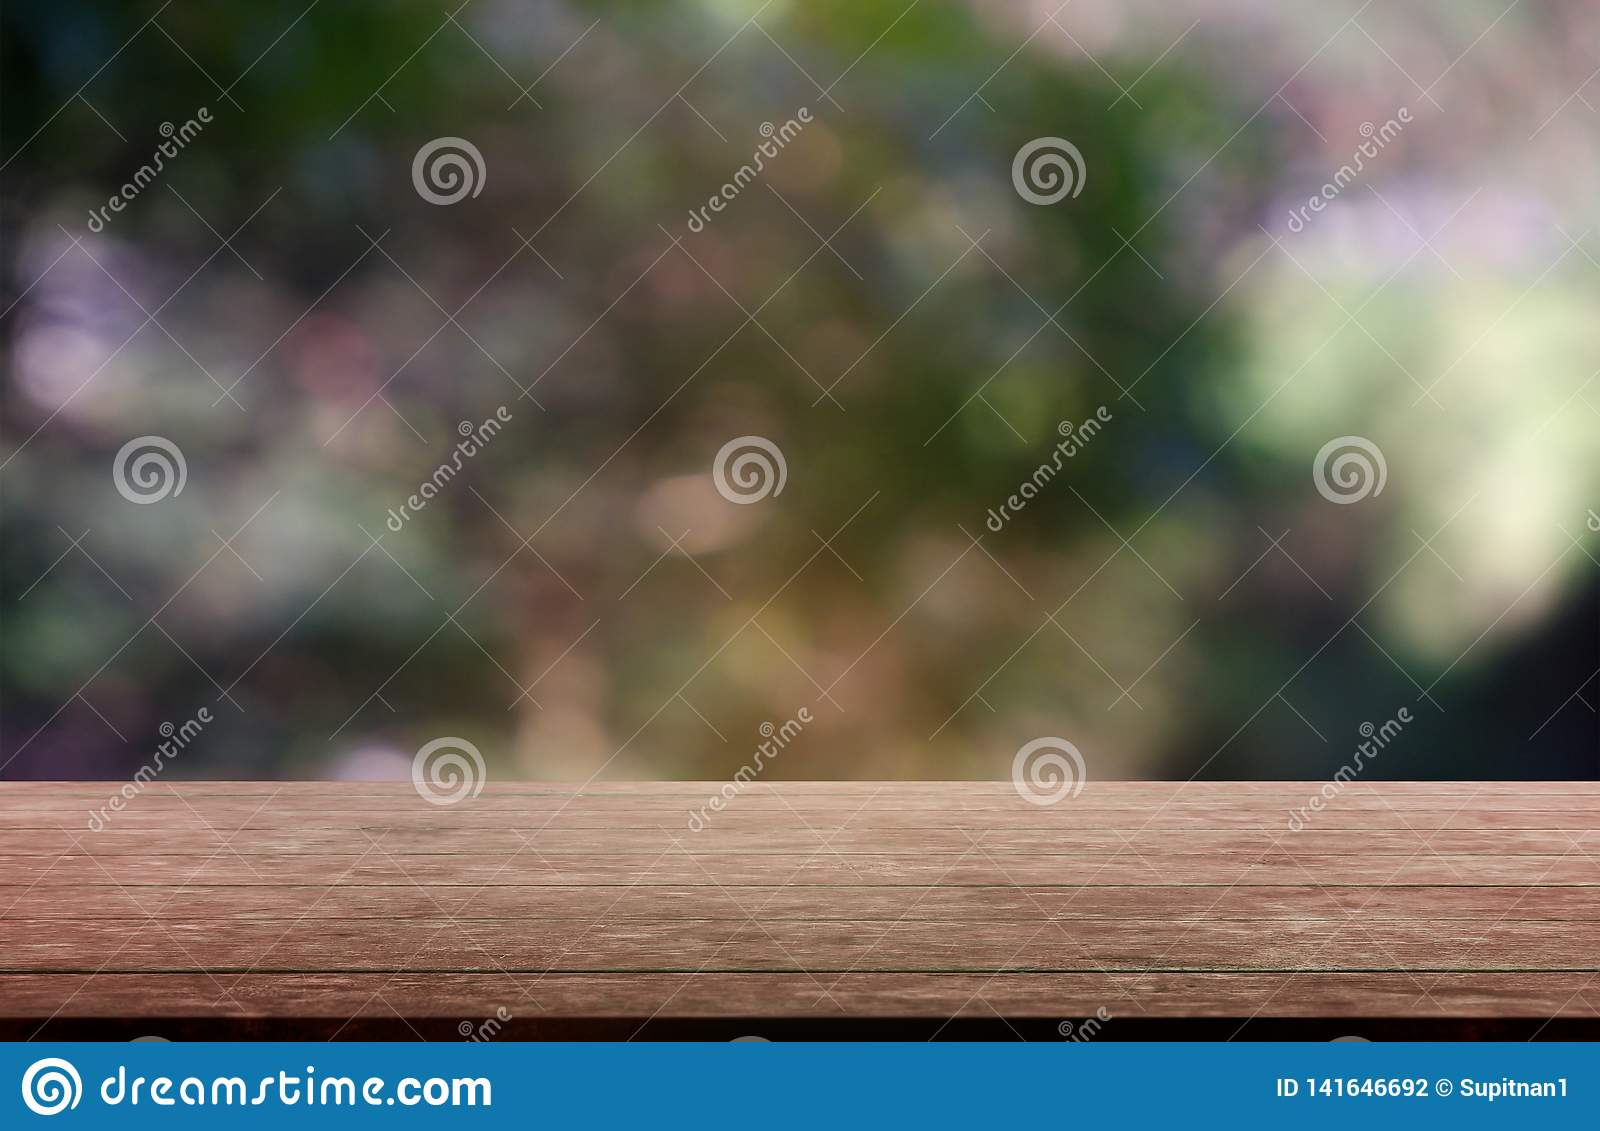 Empty wooden table in front of abstract blurred green of garden and nature light background. For montage product display or design